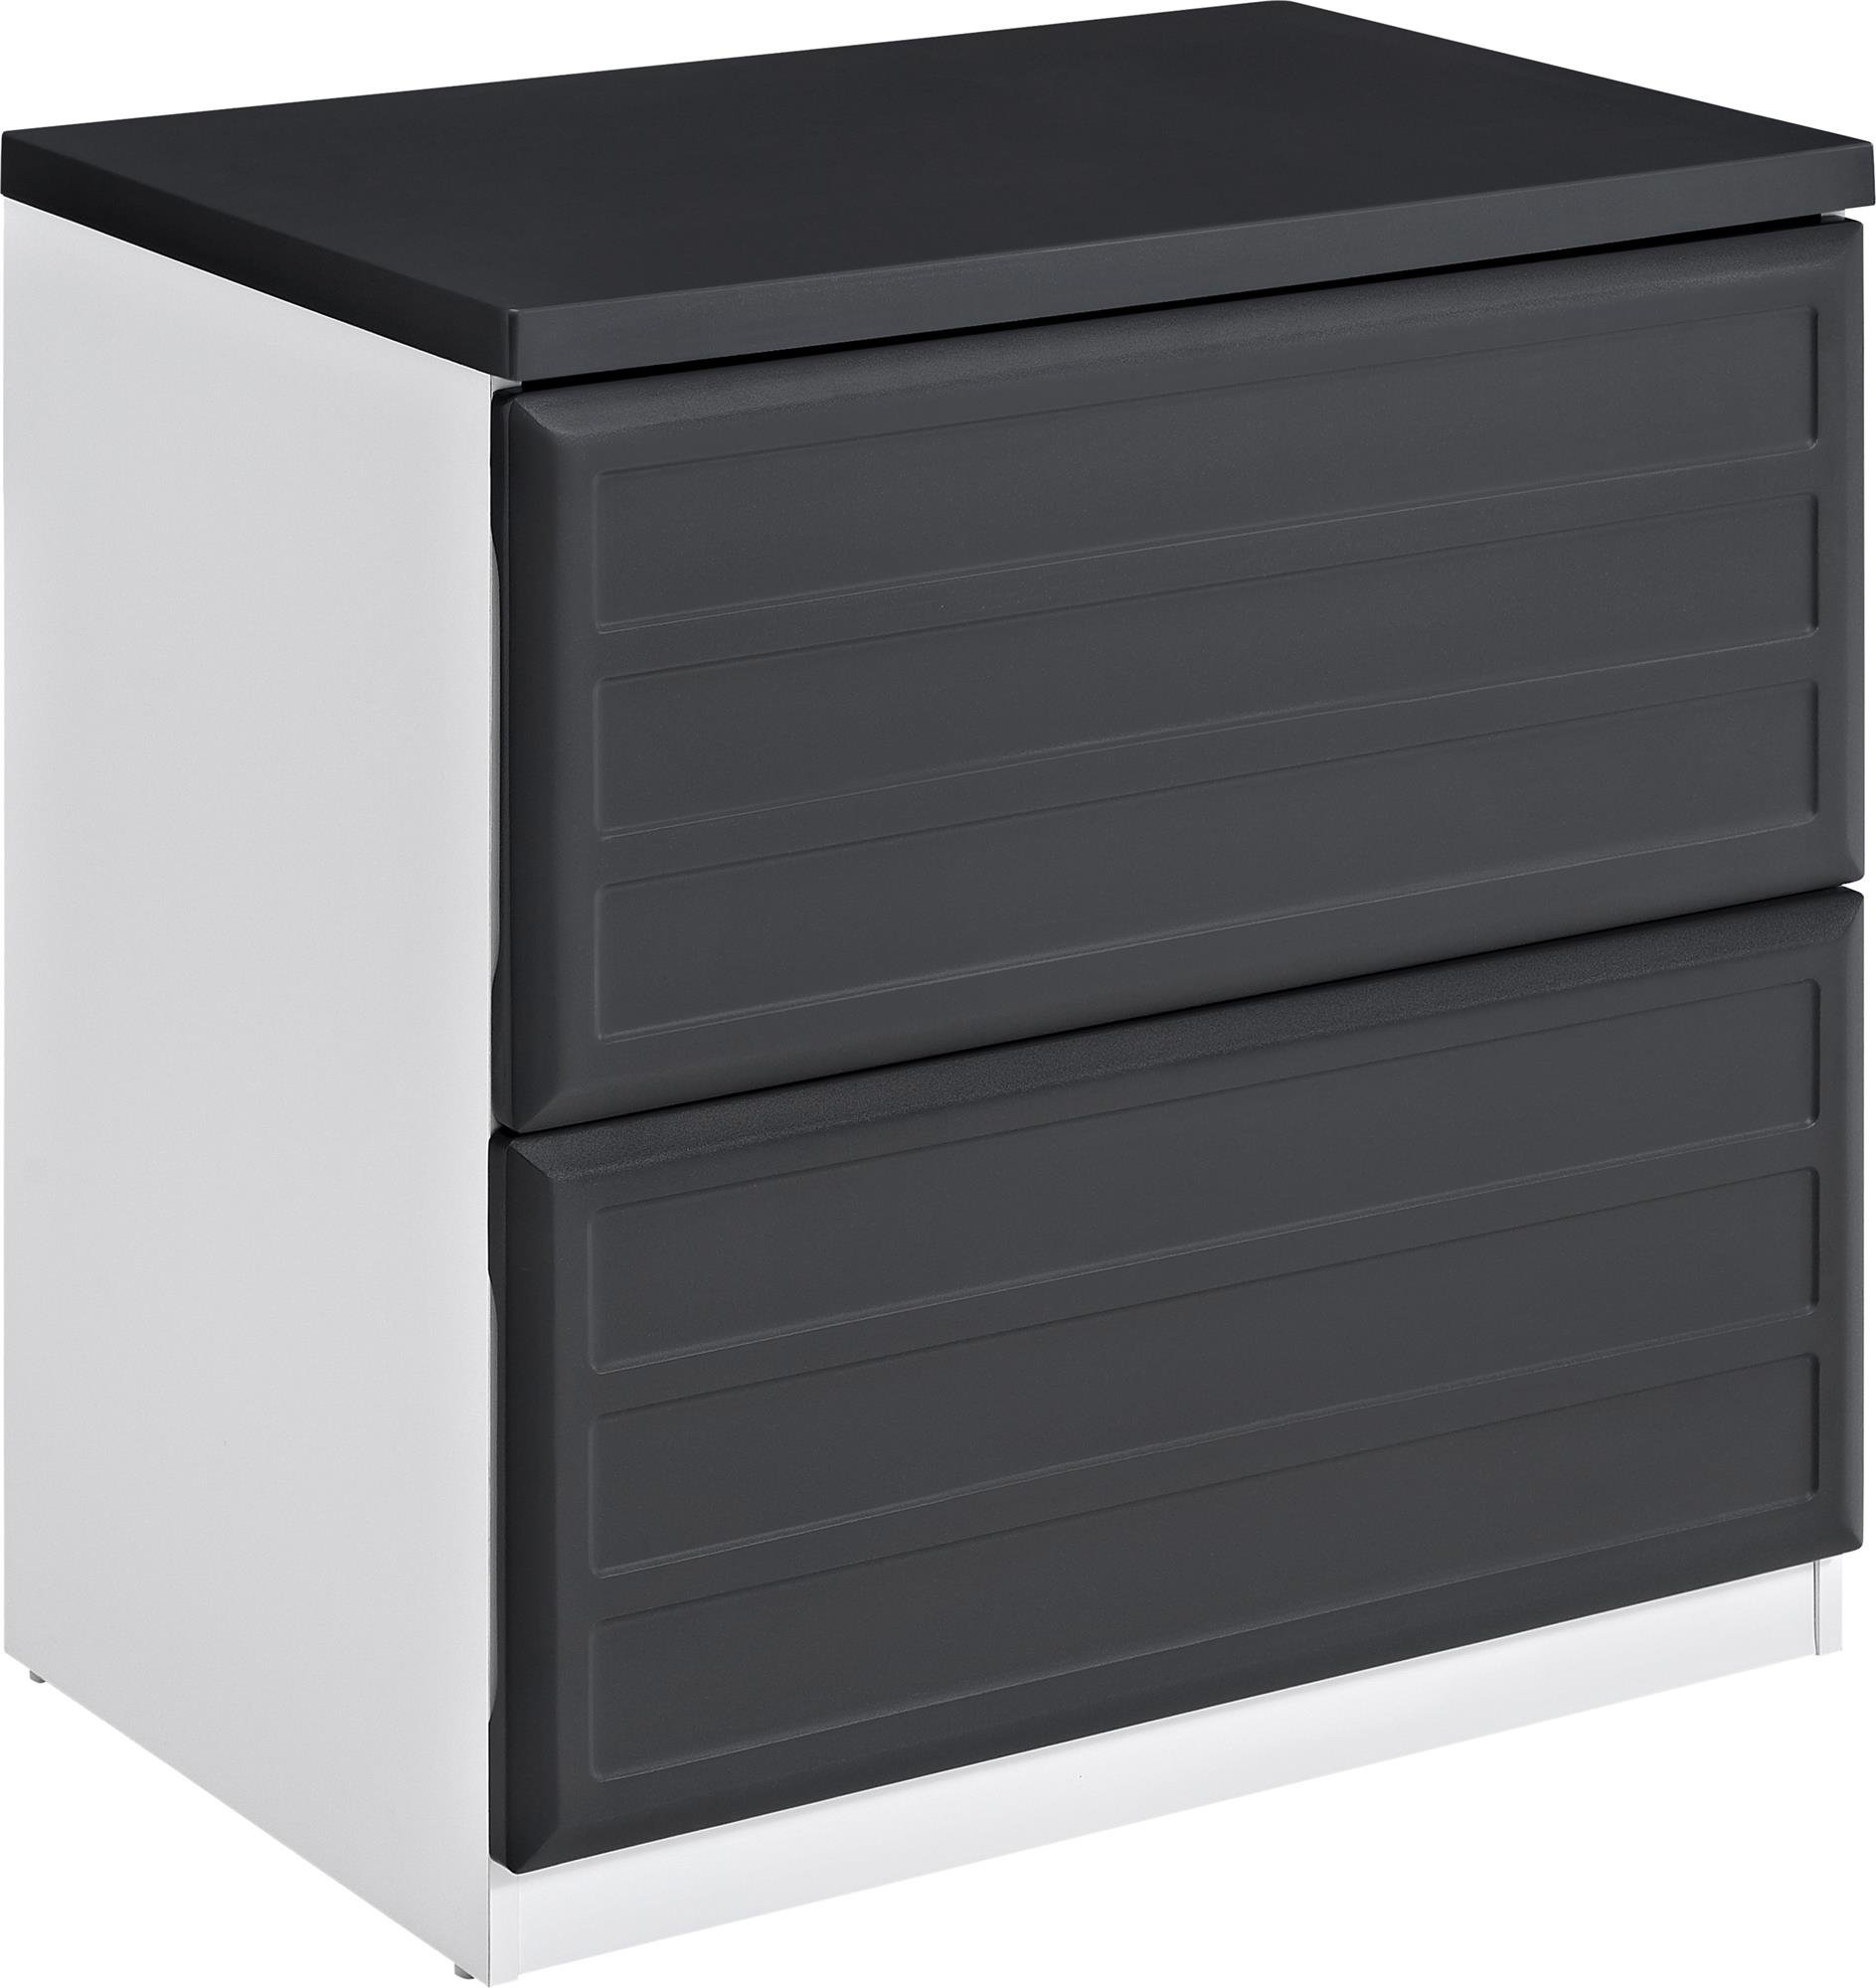 Ameriwood Home Pursuit Lateral File Cabinet, Gray by Ameriwood Home